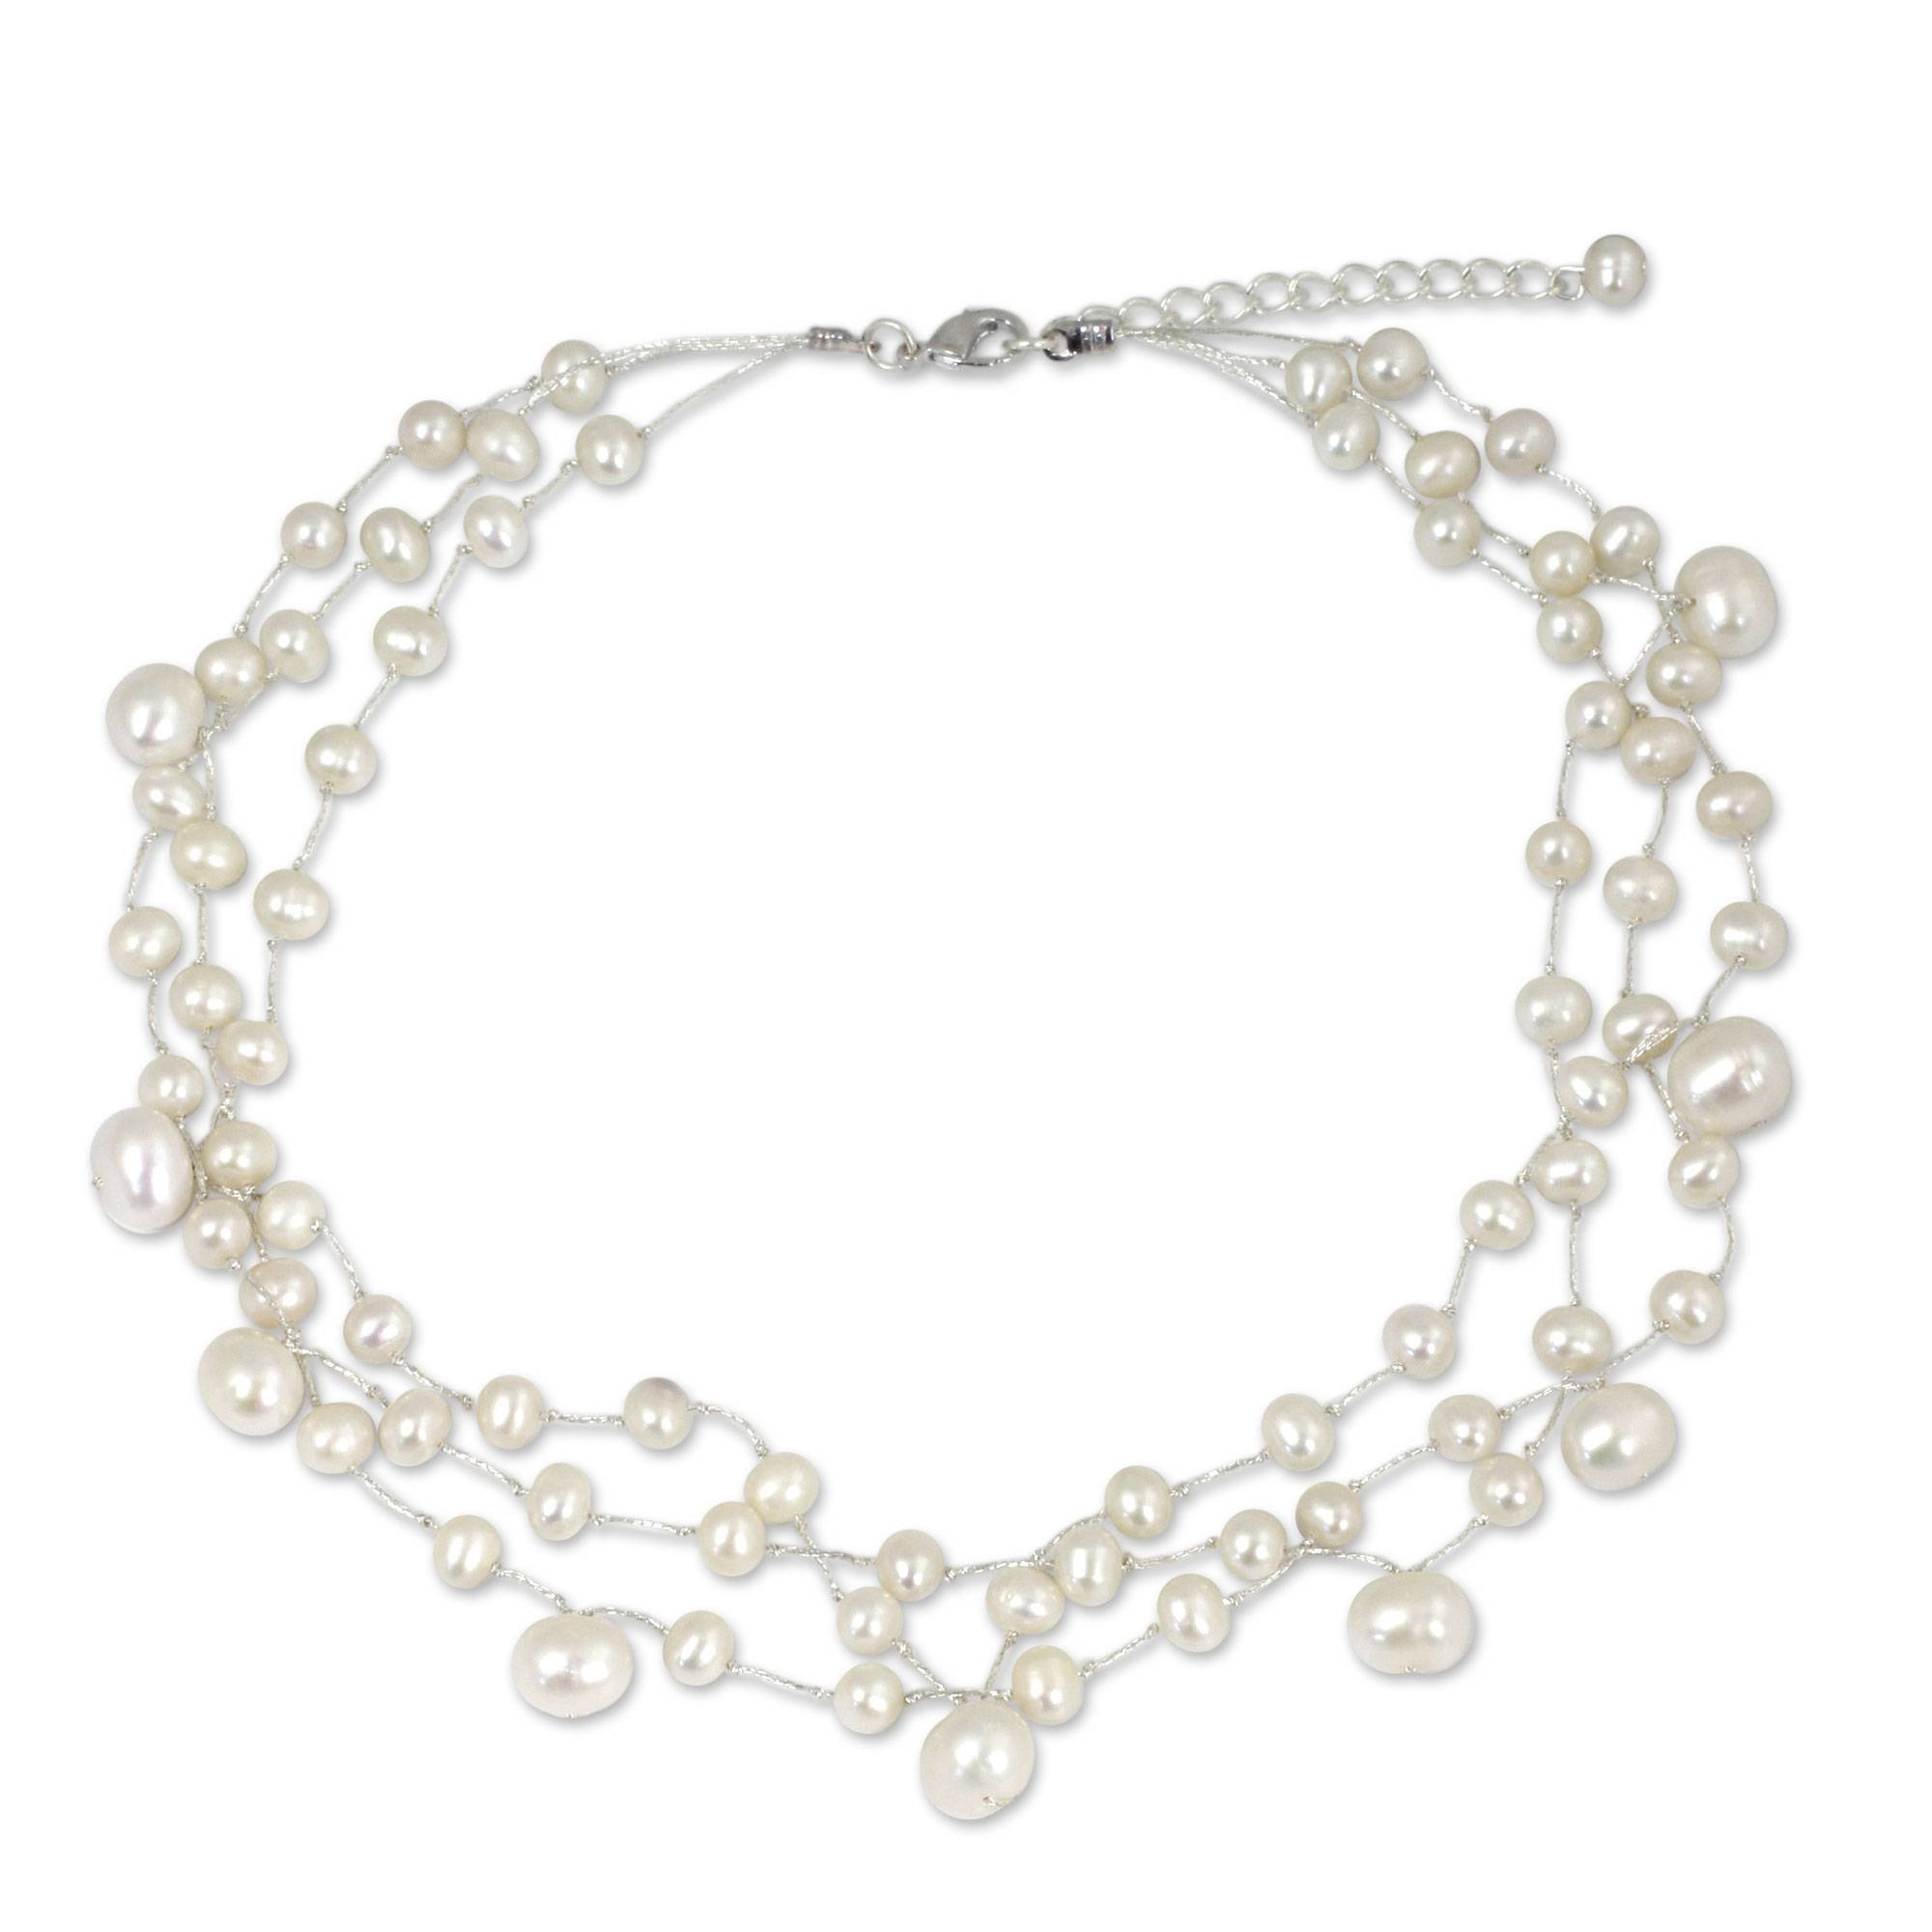 NOVICA White Cultured Freshwater Pearl Multi-Strand Bridal Choker, 15.5'' - 17.5'', Moonlight Glow' by NOVICA